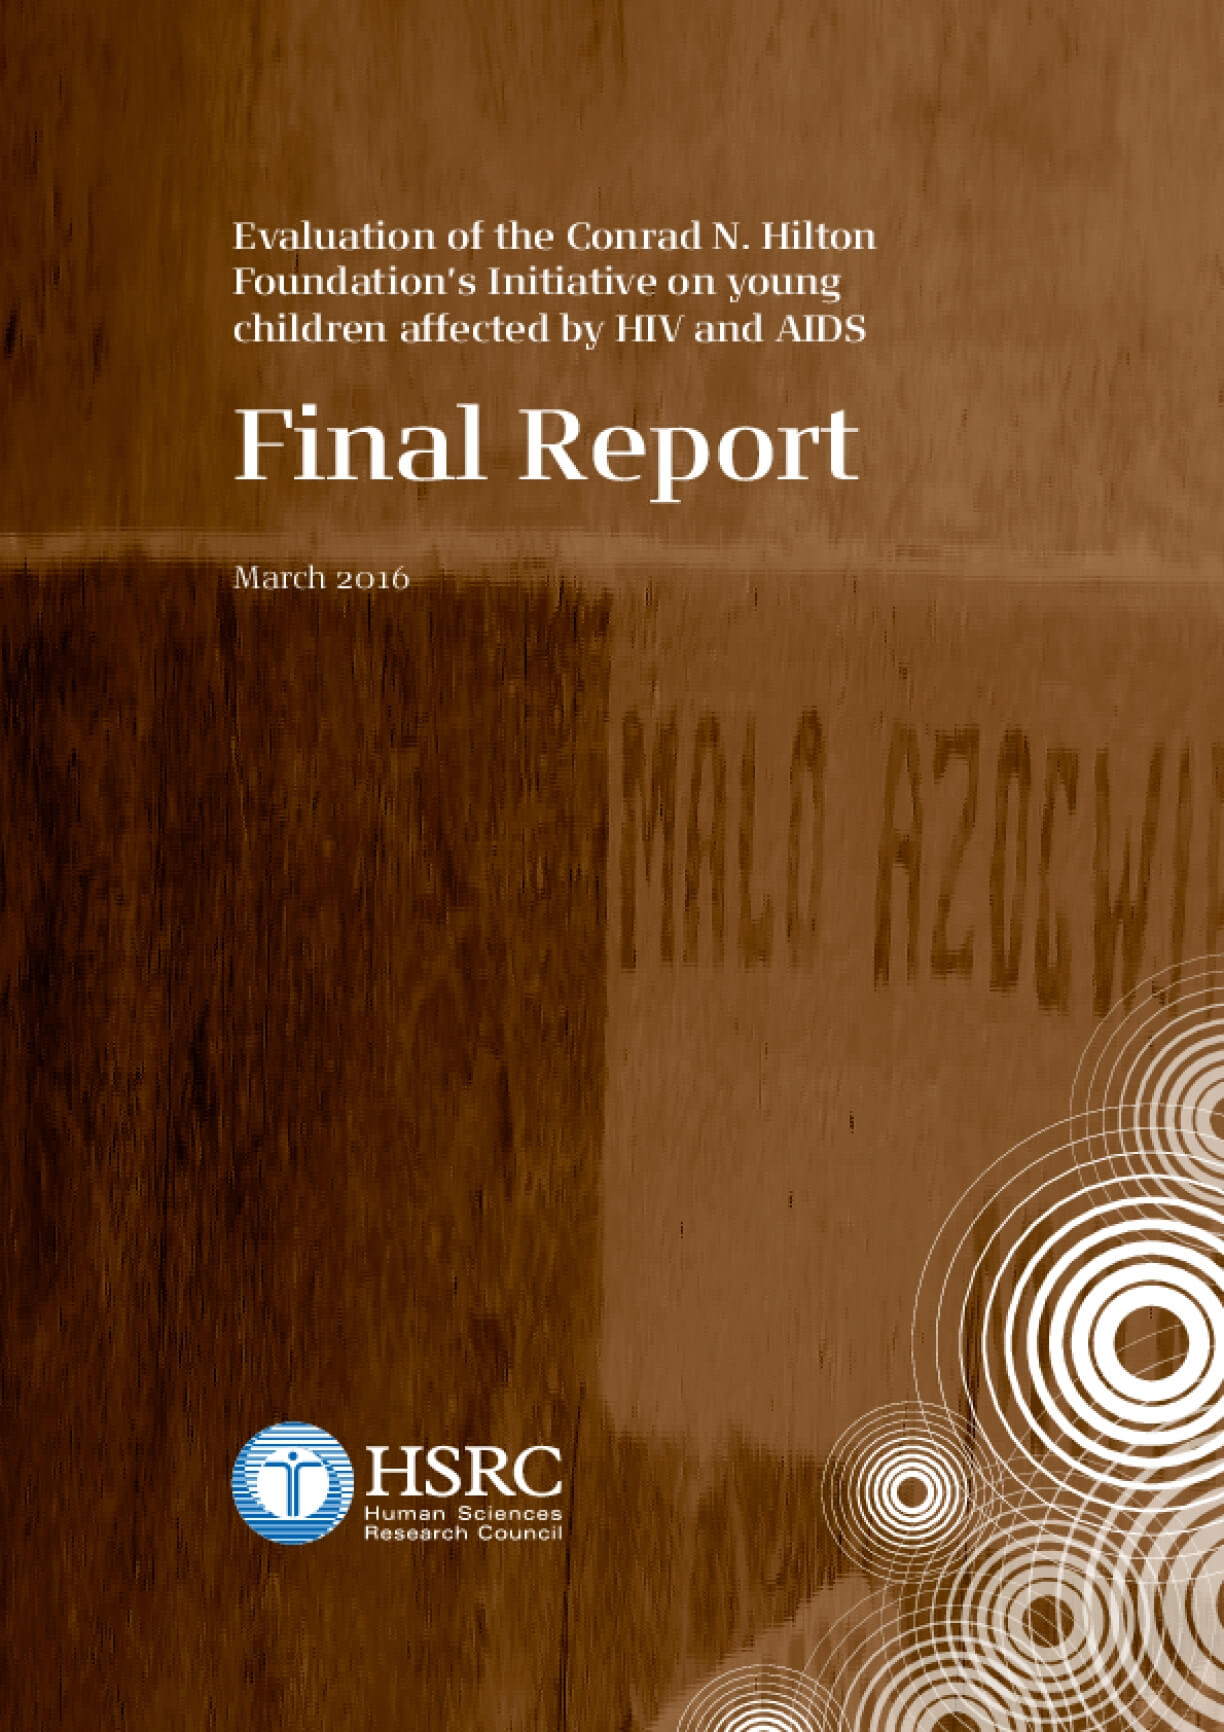 Evaluation of the Conrad N. Hilton Foundation's Initiative on Young Children Affected by Hiv and Aids Final Report